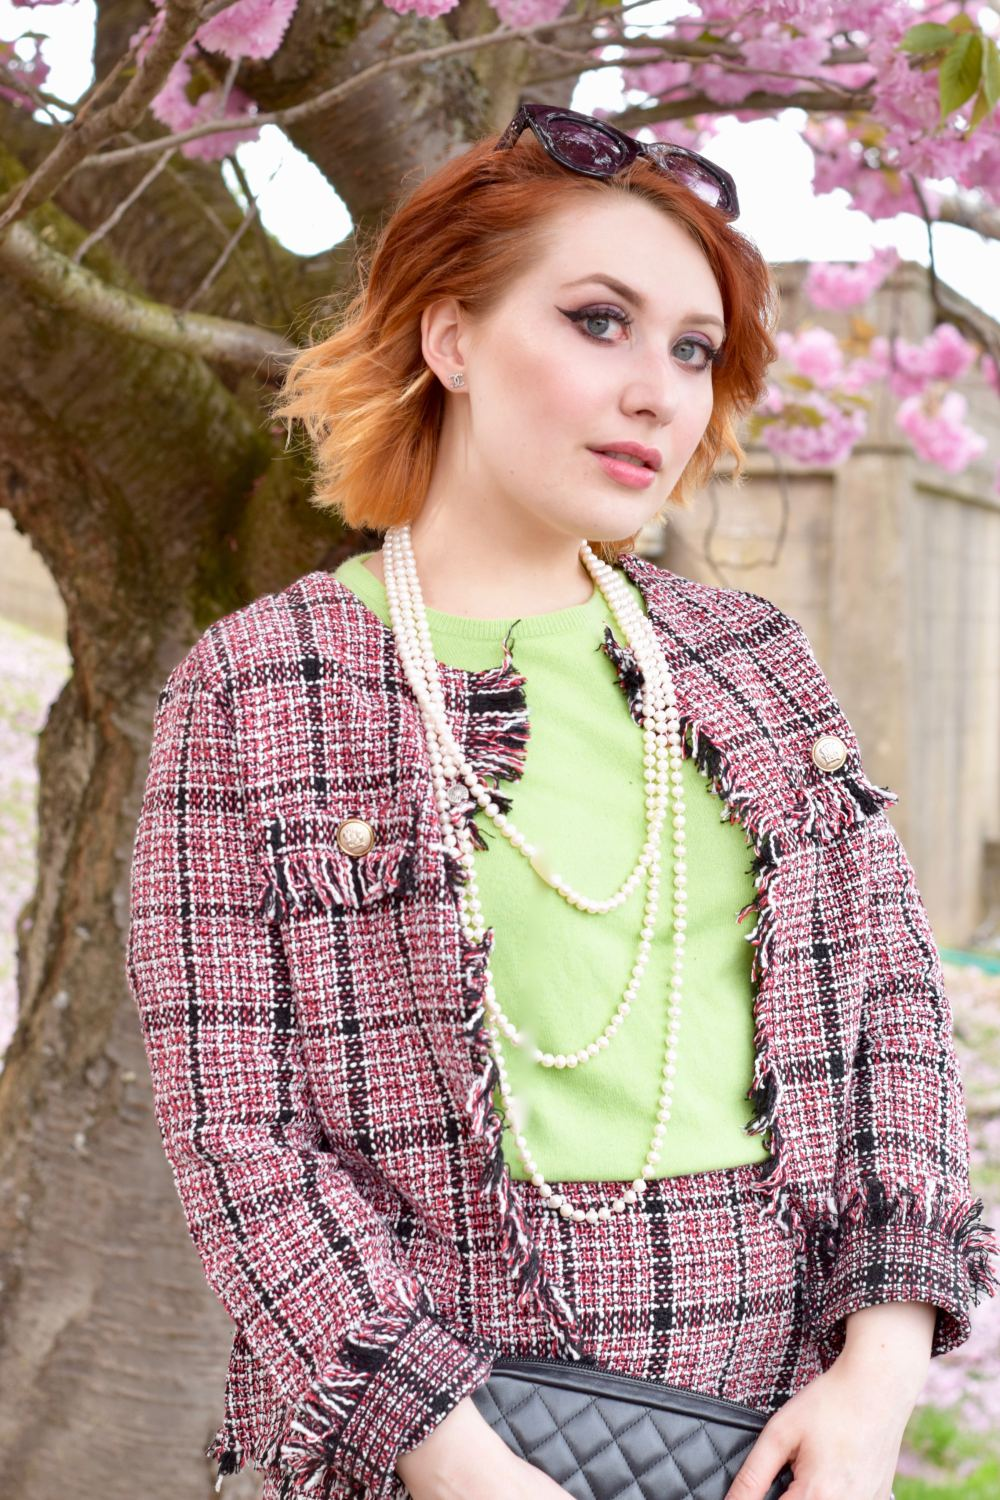 Scottish blogger Styled by Alice wears pink boucle tweed co ord and green cashmere jumper in the style of Chanel